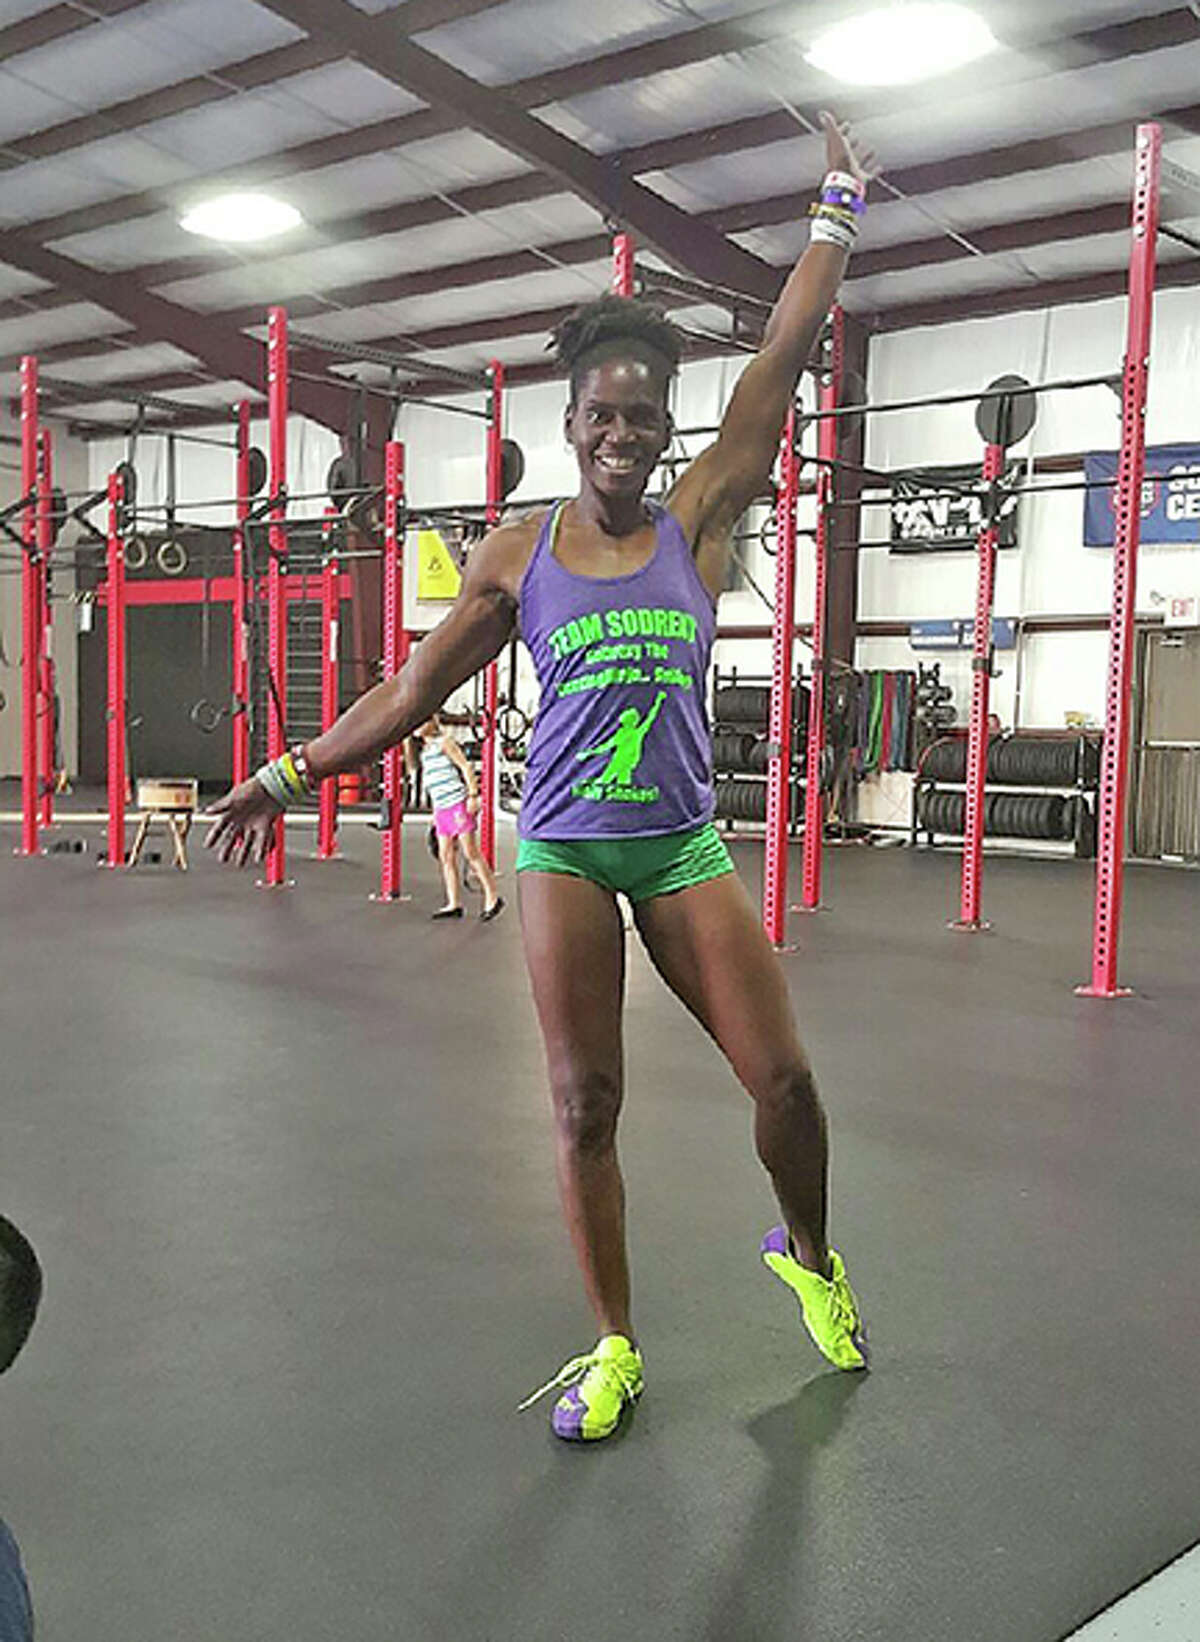 Kahla Middle School P.E. teacher and track and field coach Drexel Long has earned a place in the American Ninja Warrior?s regional competition.